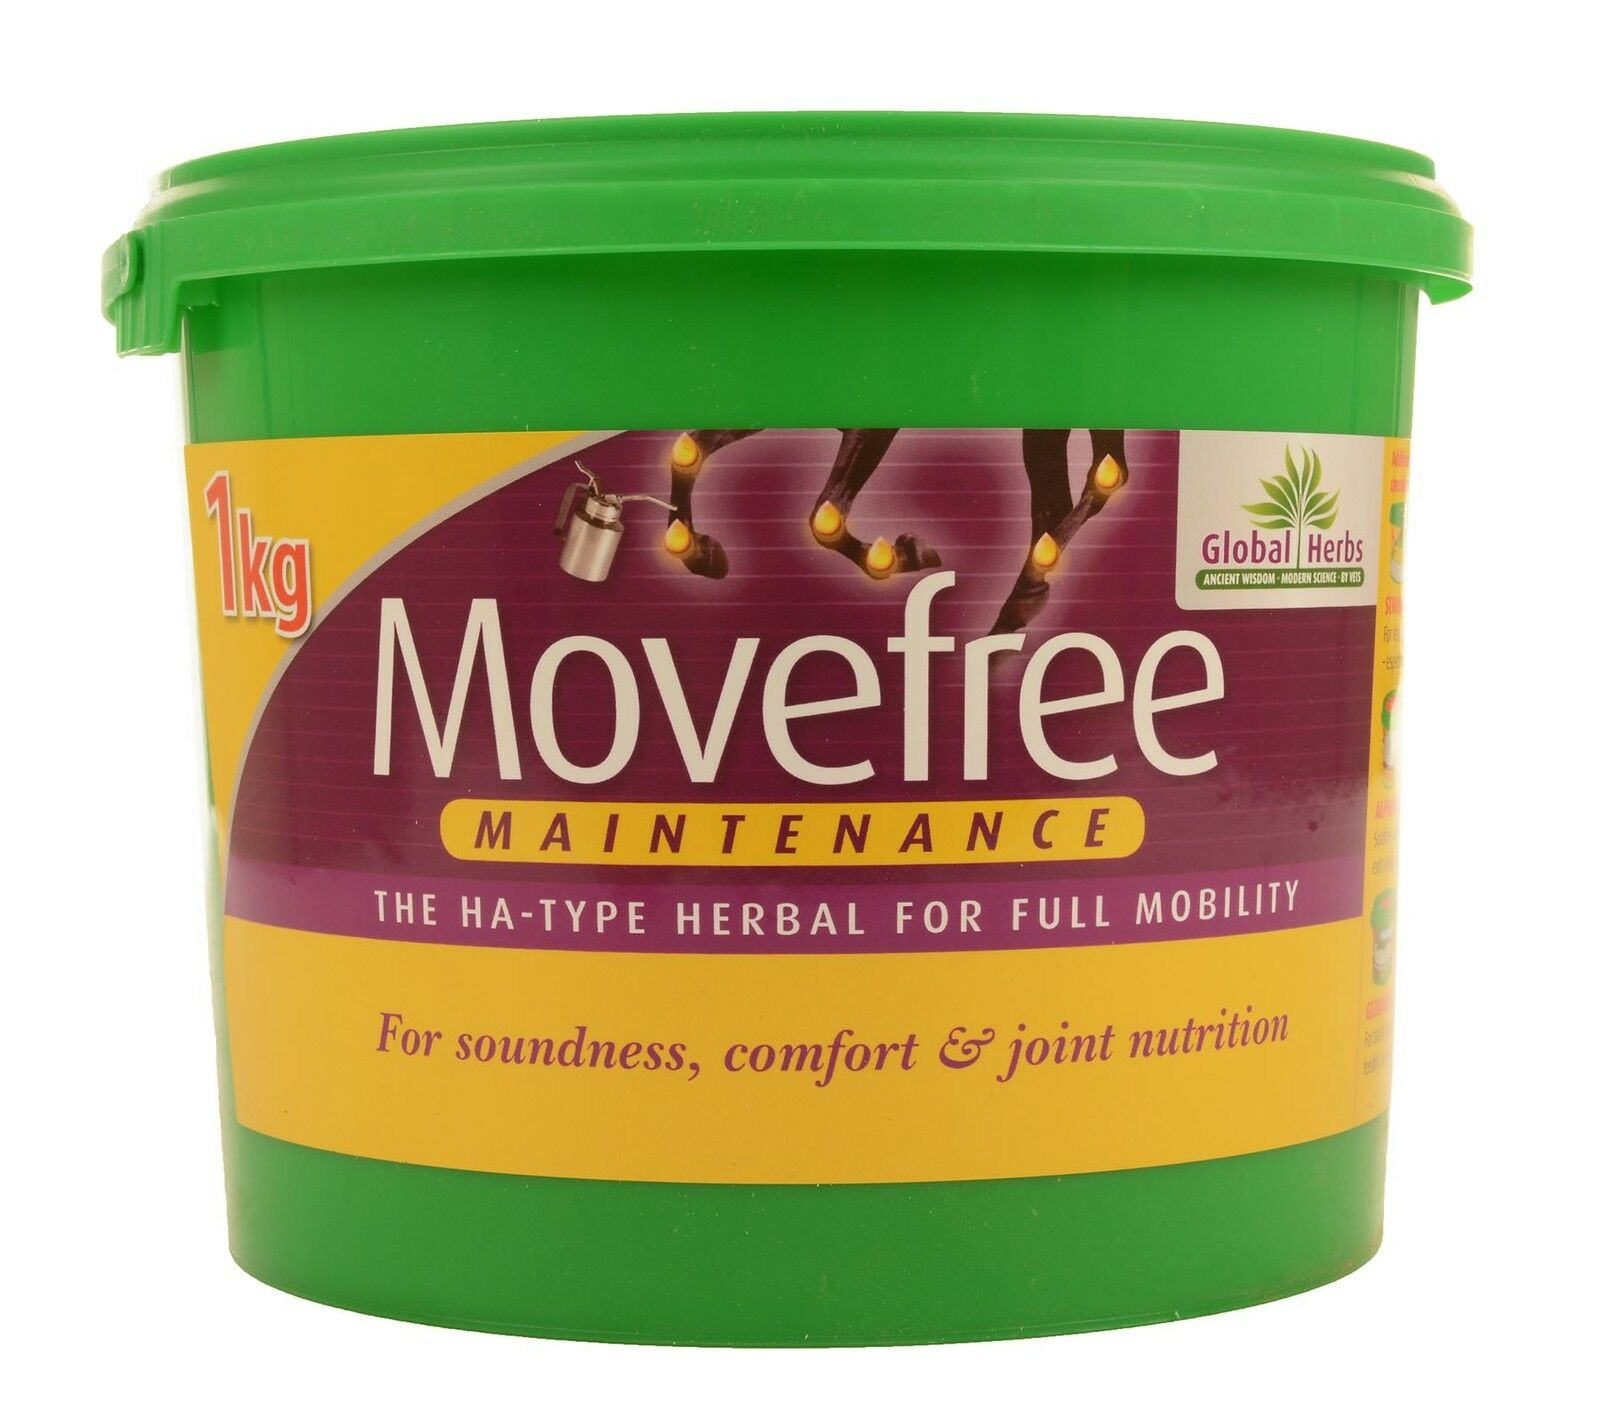 GLOBAL HERBS MOVEFREE MAINTENANCE EQUINE HORSE JOINTS & SOUNDNESS